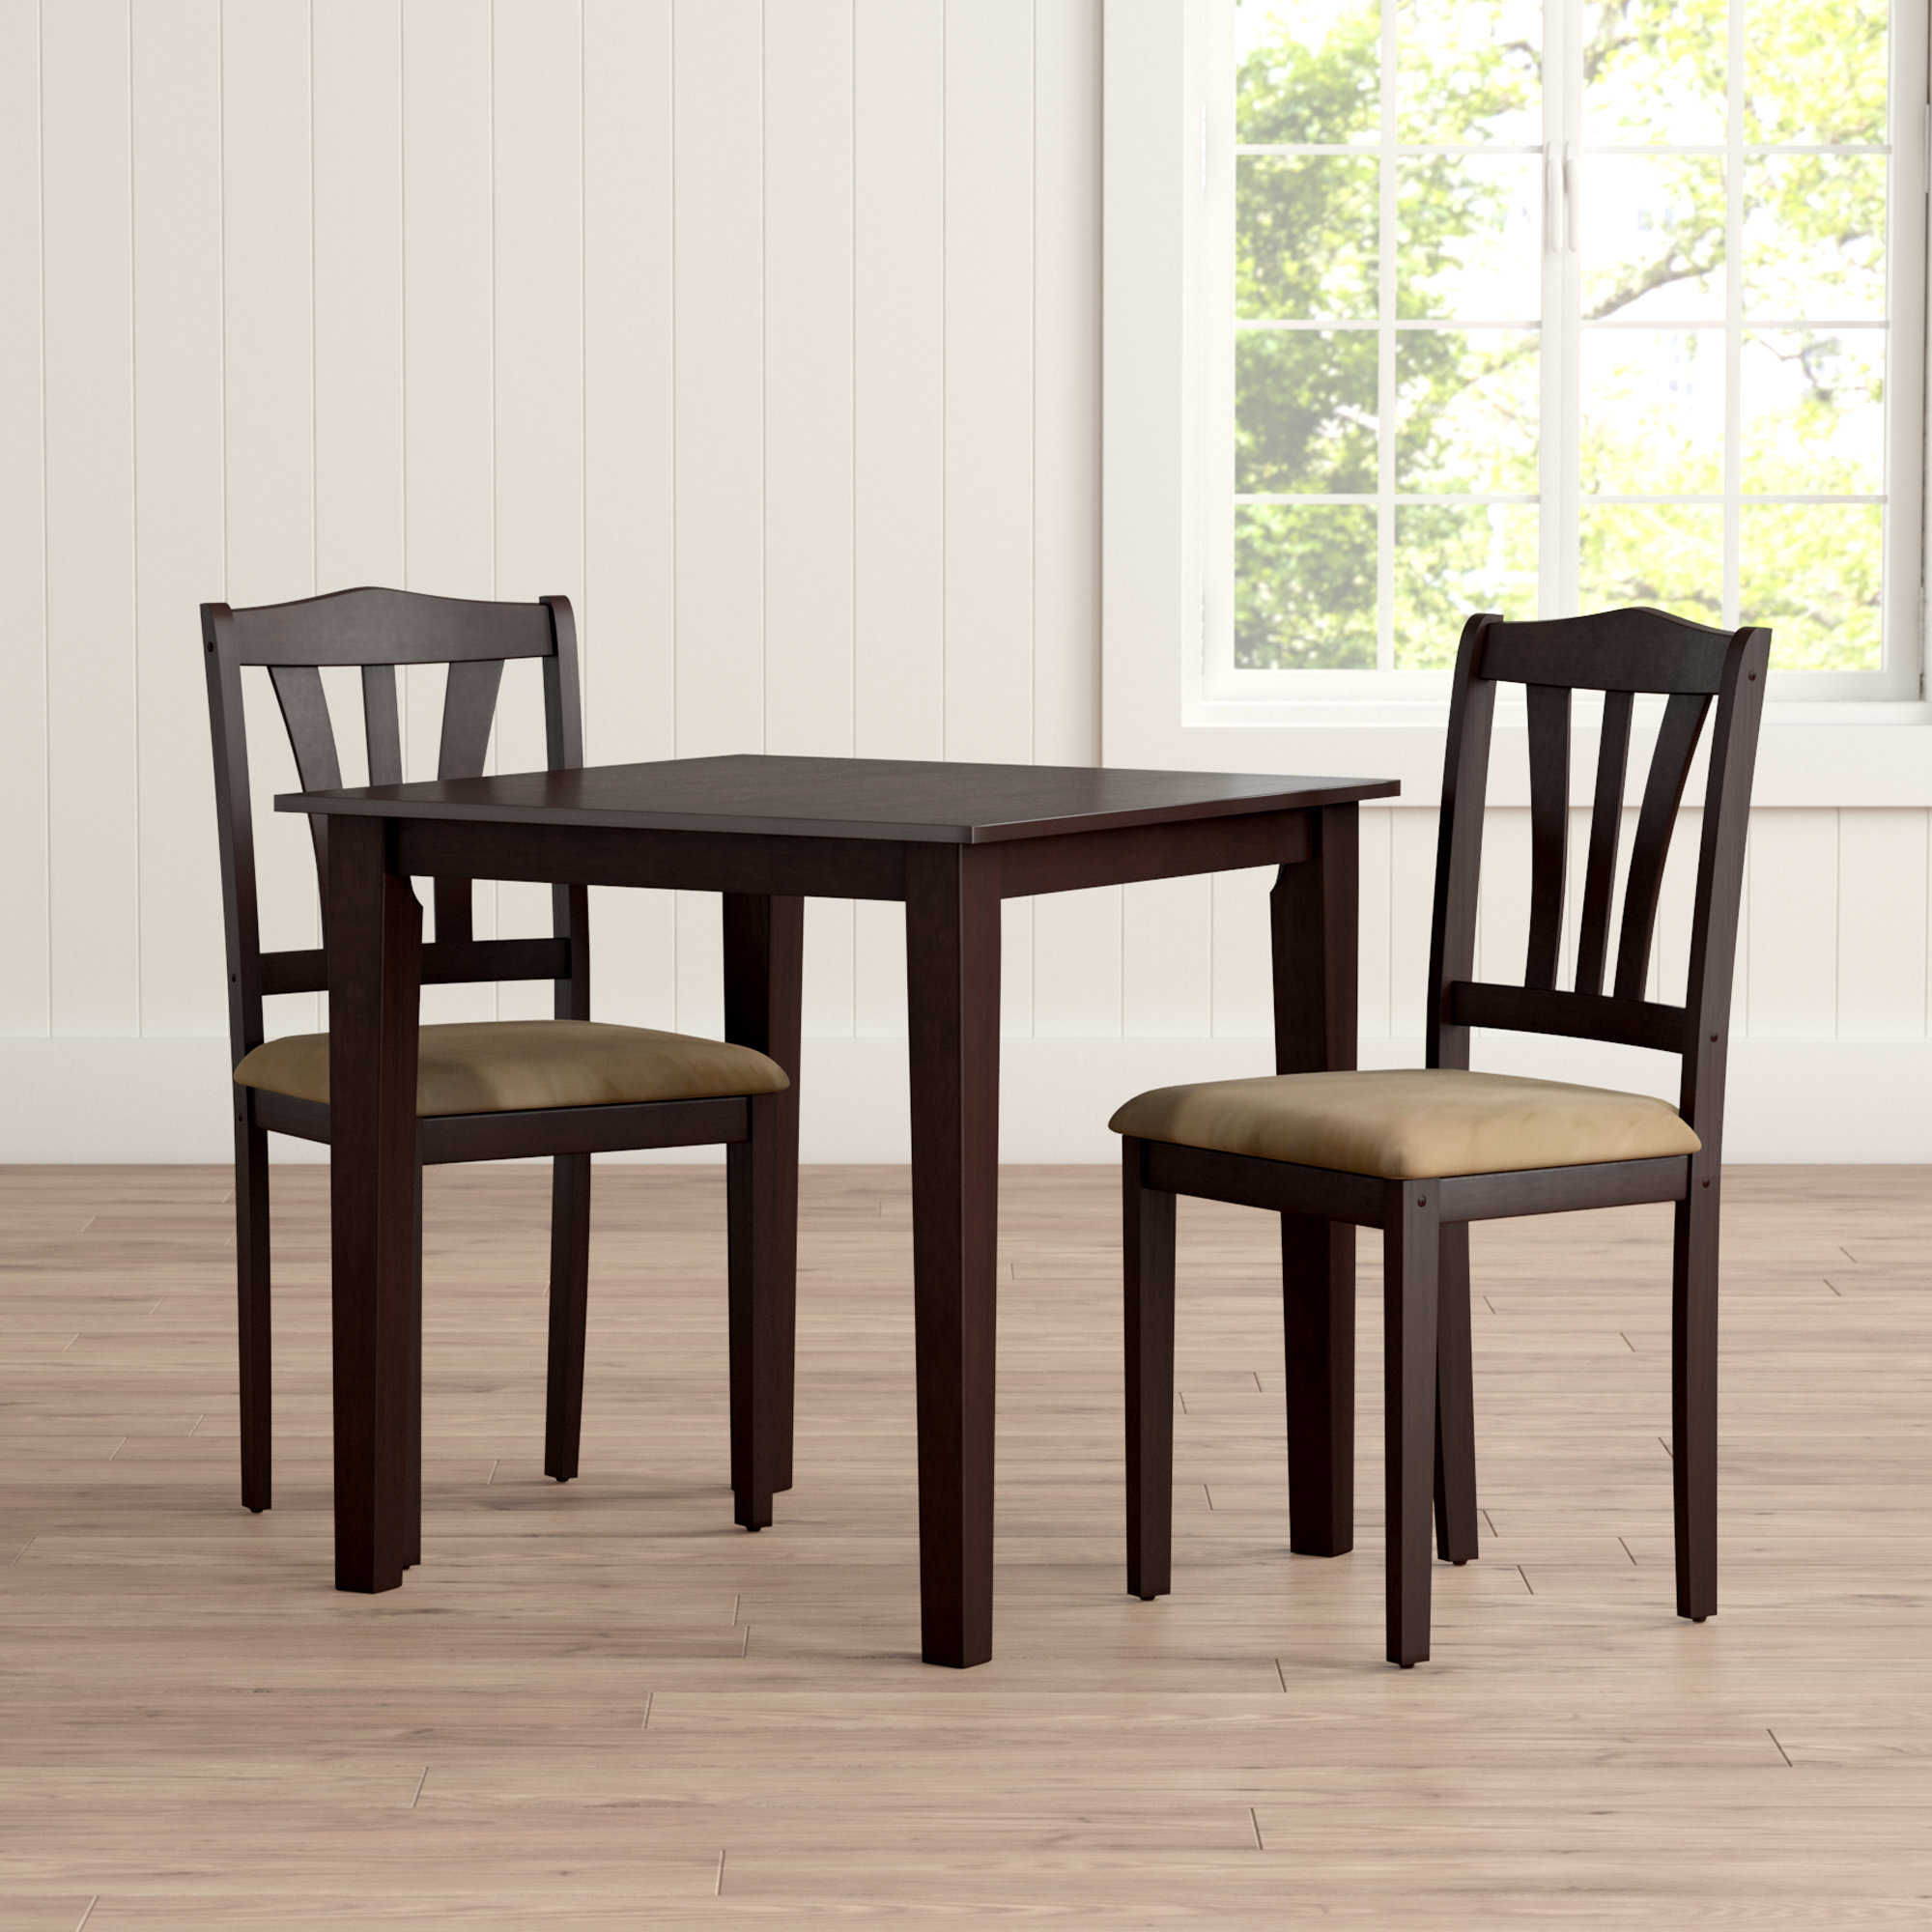 Dinah 3 Piece Dining Set With Regard To Recent Tenney 3 Piece Counter Height Dining Sets (View 6 of 20)